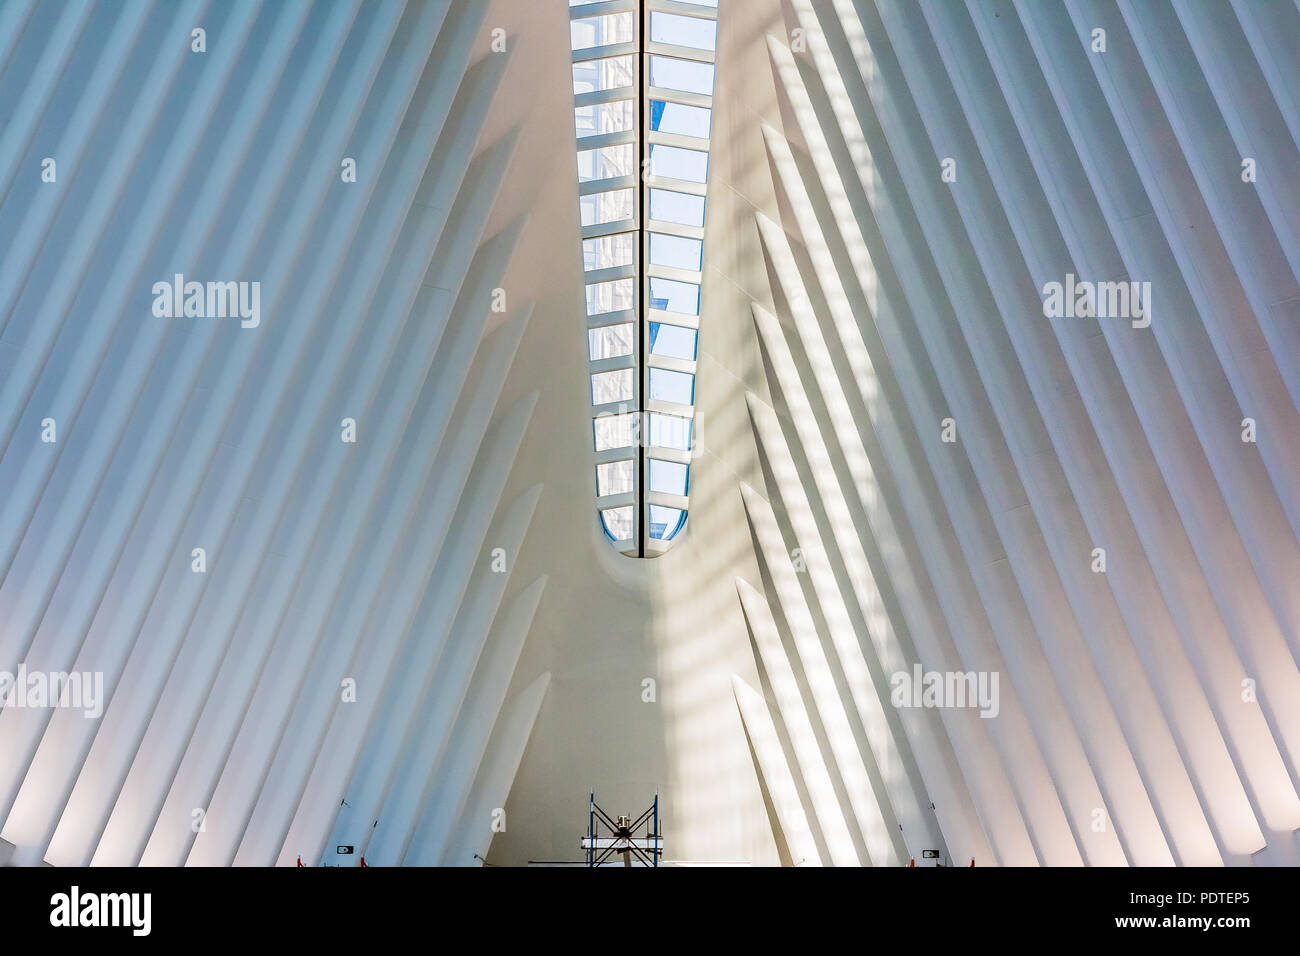 New York - May 31, 2016: The Occulus is a Transportation Hub and Westfield Shopping Center, designed by Santiago Calatrava as part of World Trade Cent - Stock Image